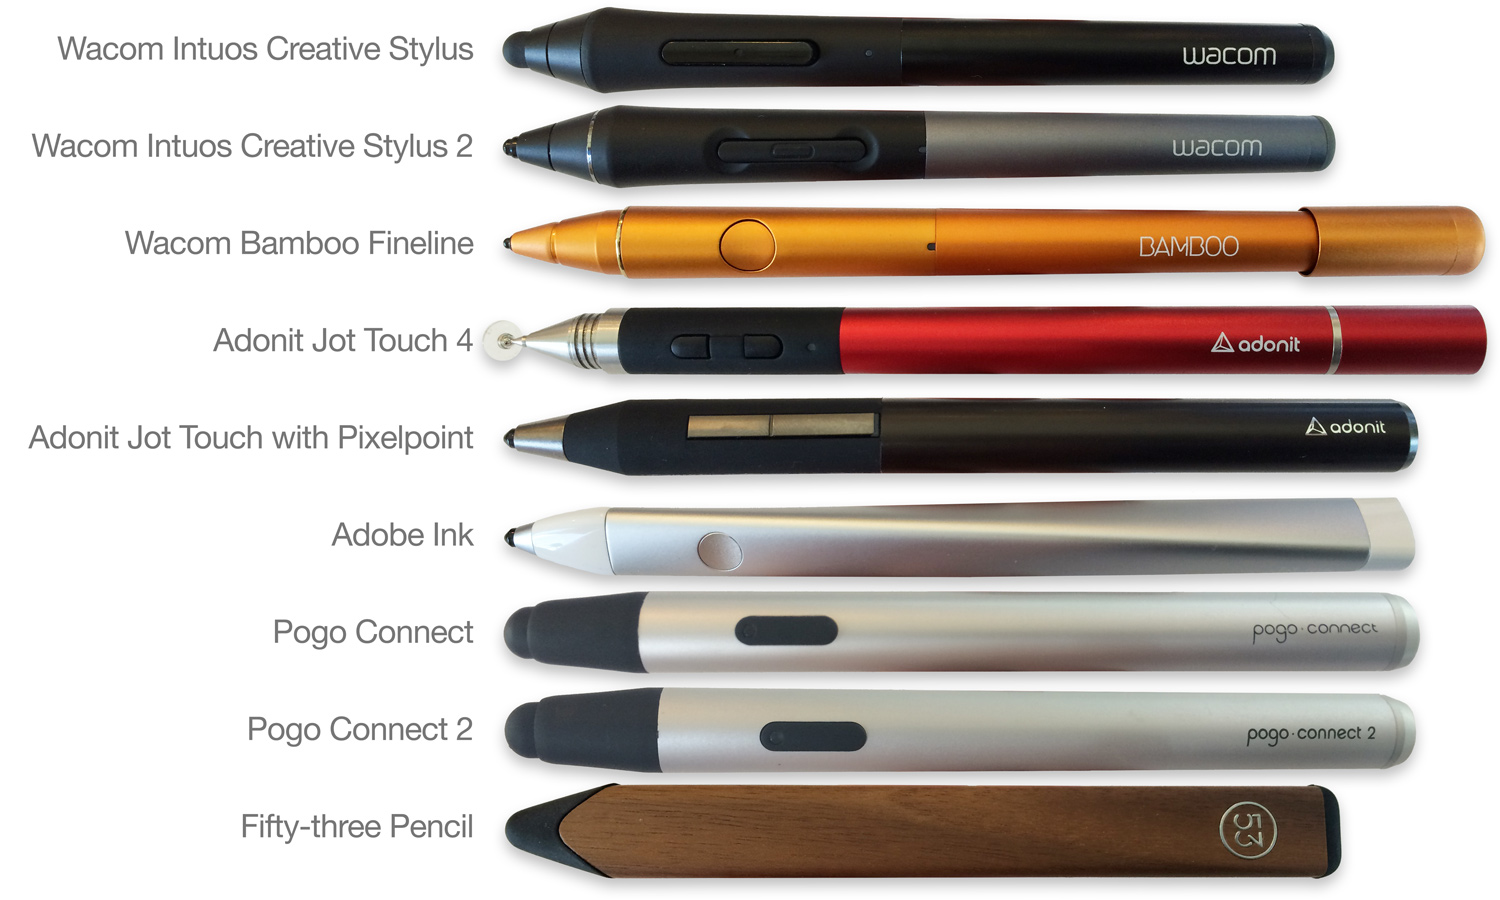 Stupendous Air Stylus Avatron Software Wacom Bamboo Software Download Code Wacom Bamboo Software Cth 670 Intuos Stylus Wacom Our Pens dpreview Wacom Bamboo Software